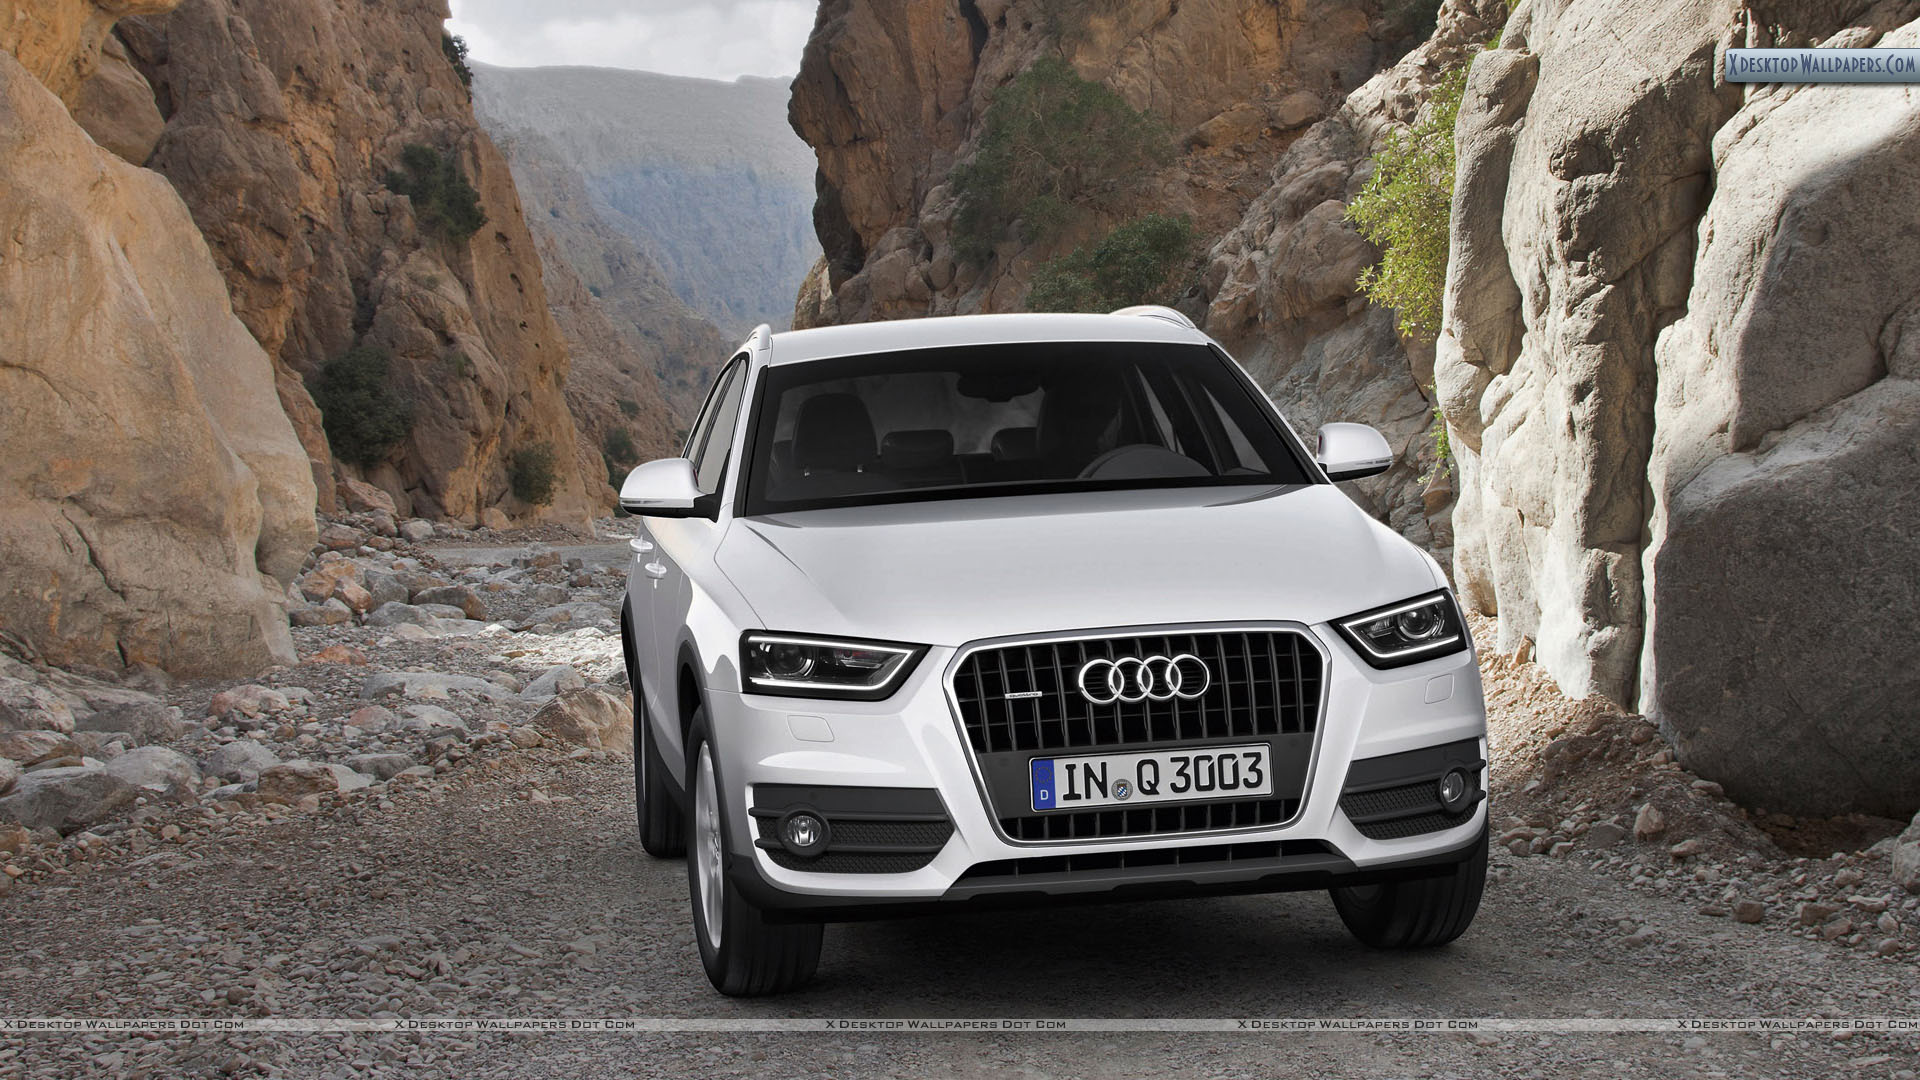 Audi Q3 White Color In a Valley Wallpapers